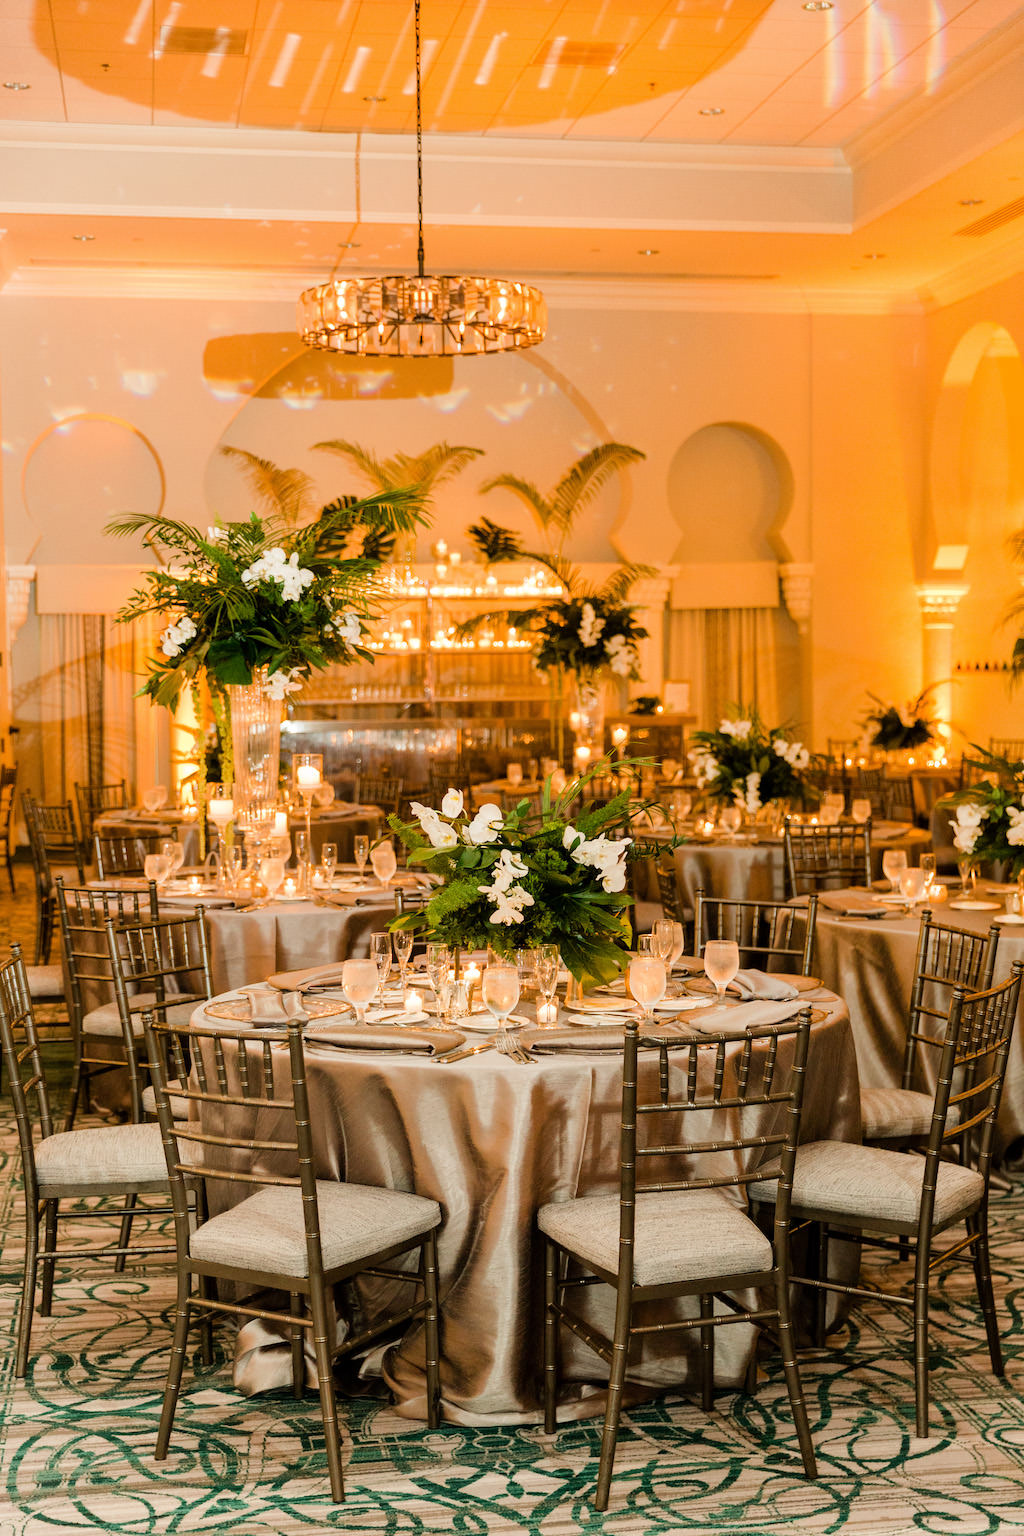 Tropical Florida Inspired Wedding Reception, Modern Wedding Decor, Tall and Low Mix Match Floral Centerpieces with Green Monstera Leaves, Large Palm Fronds, White Orchids, Round Tables with Silver Linens, Chiavari Chairs, Grand Ballroom of The Vinoy Renaissance St. Petersburg Resort & Golf Club | Over the Top Rental Linens | Tampa Bay Florist Bruce Wayne Florals | Florida Luxury Wedding Planner Parties A'La Carte